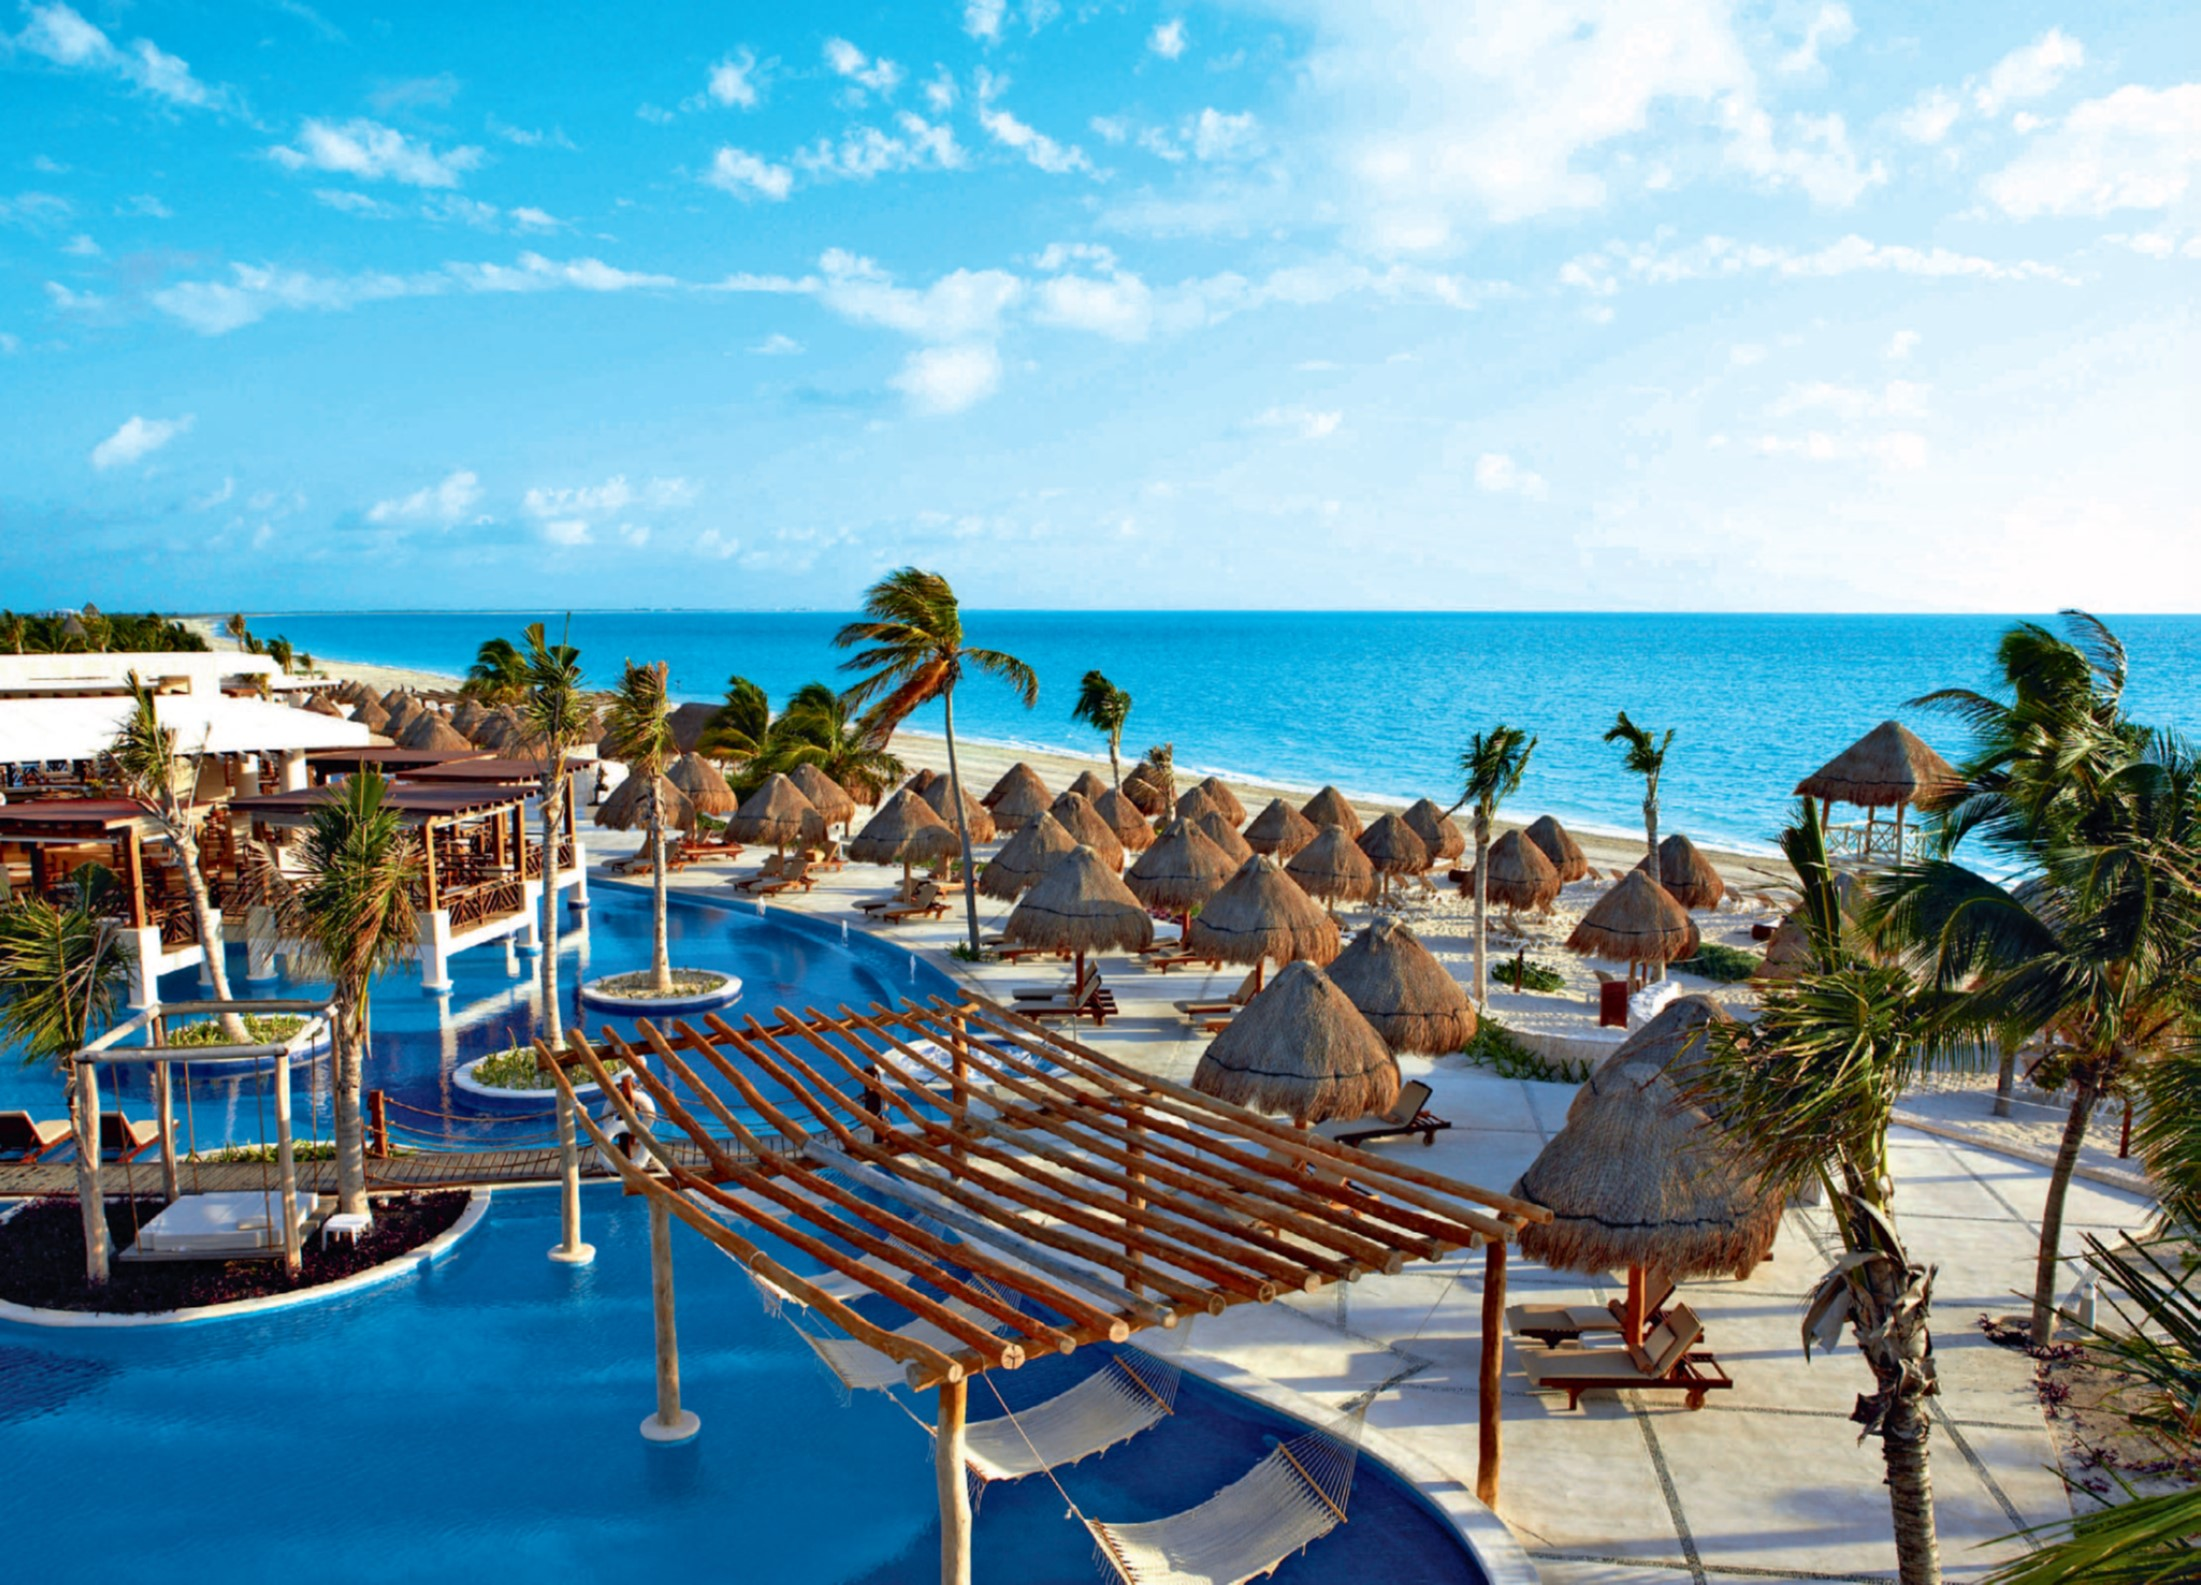 Reviews for The Fives Azul Beach Resort, Riviera Maya Excellence playa mujeres pictures resort